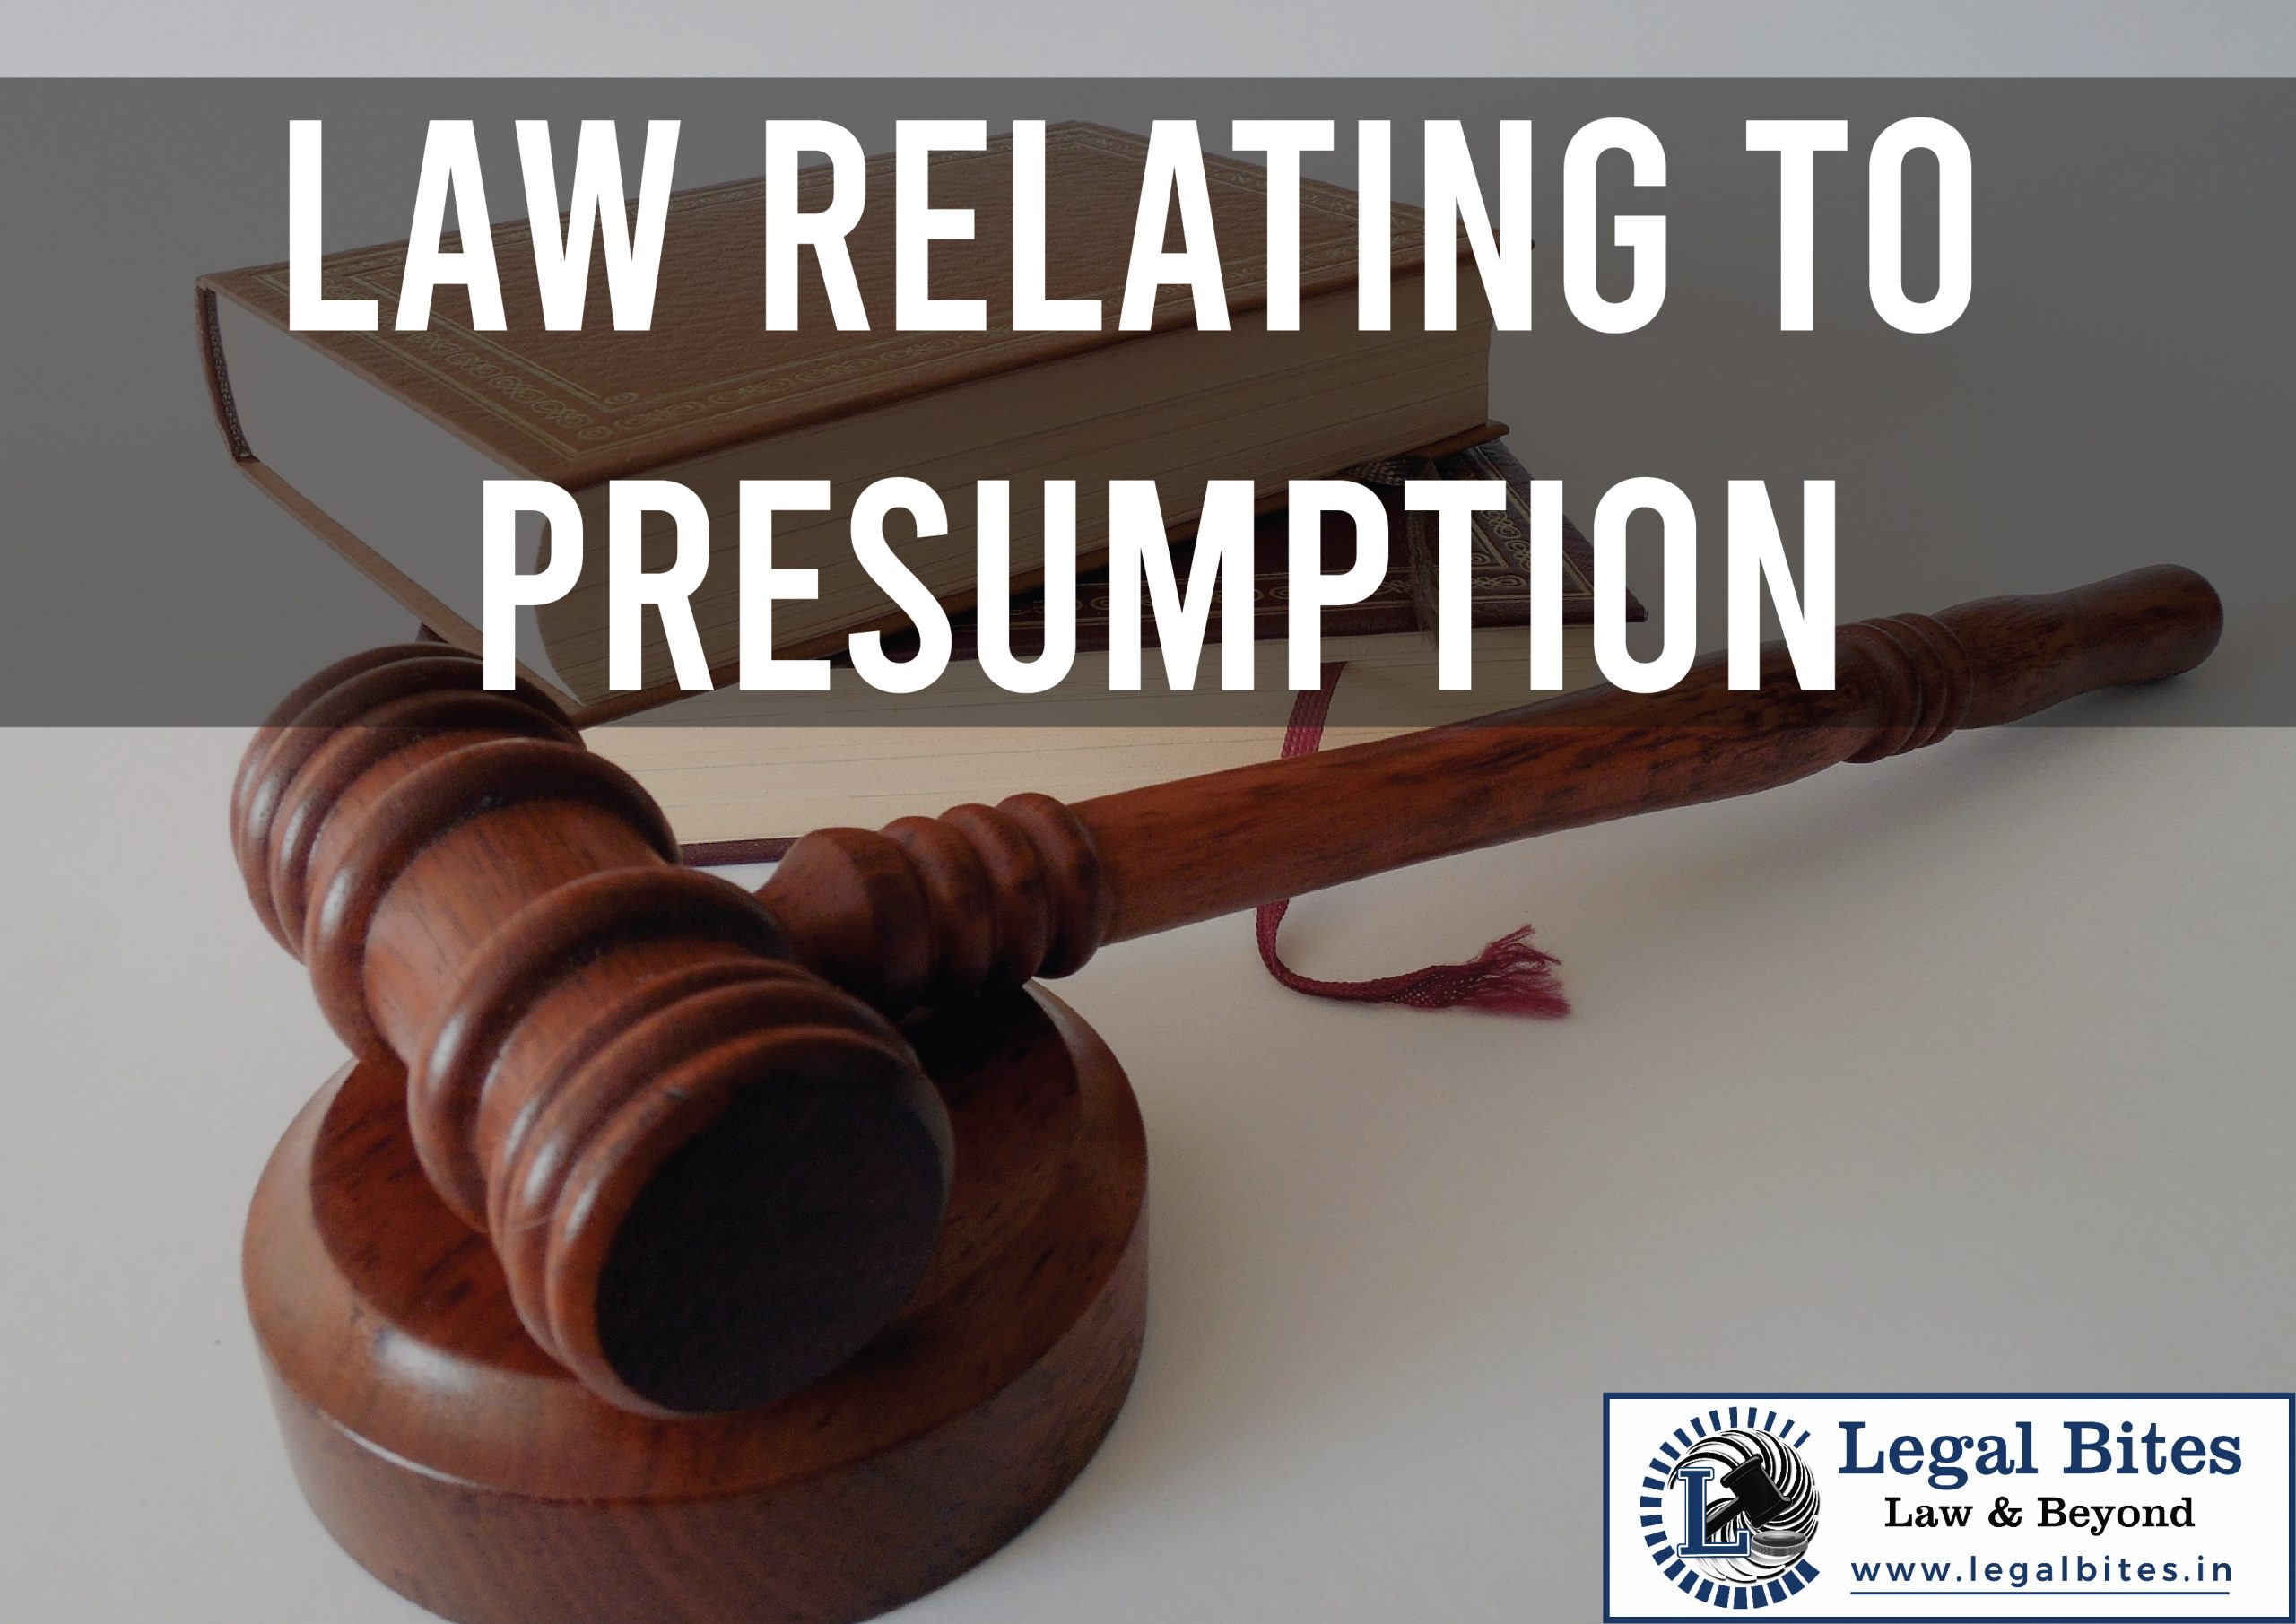 Law Relating to Presumption